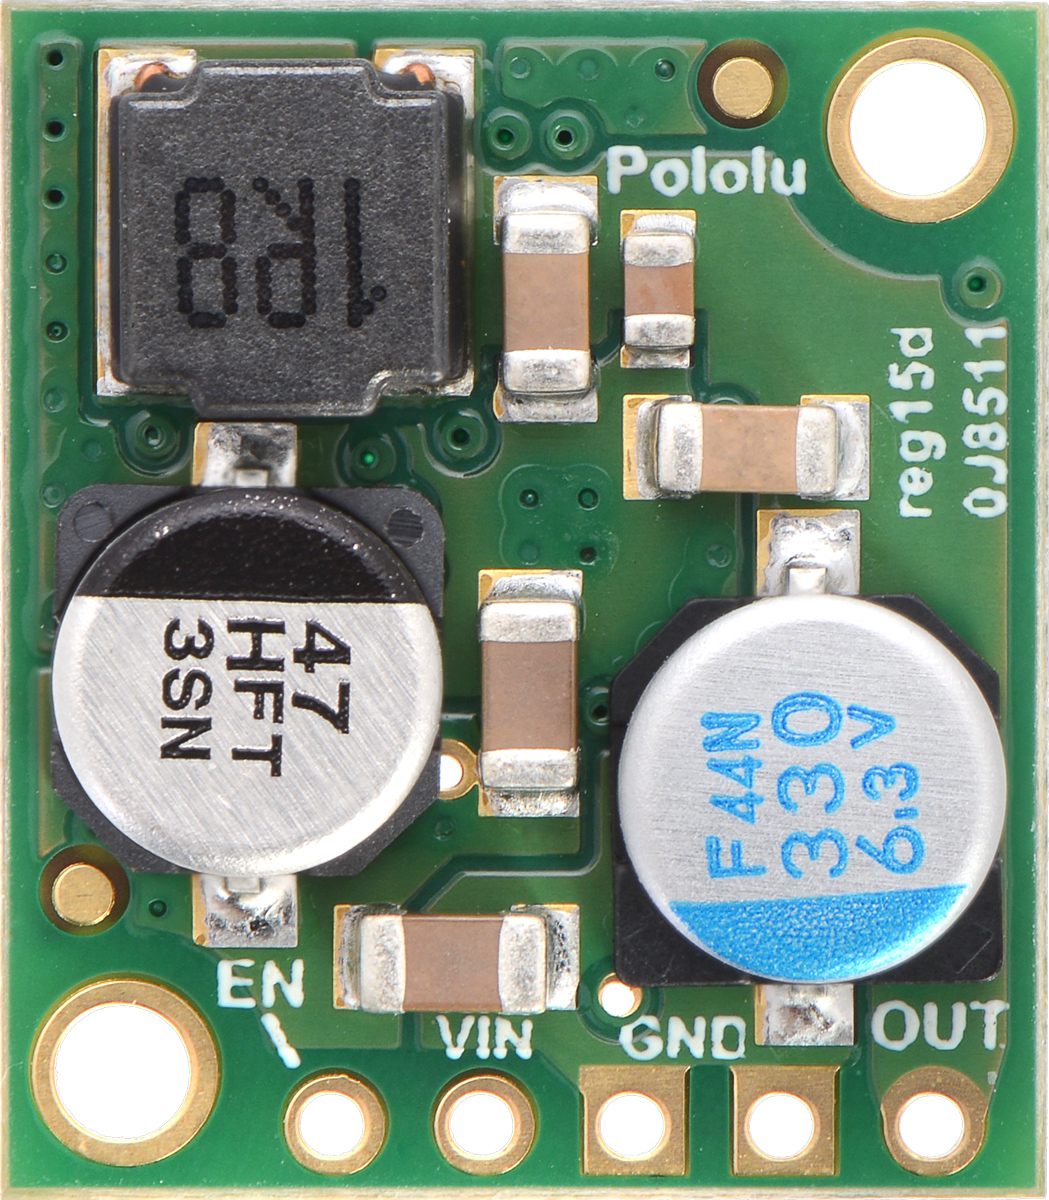 Pololu New Product 5v 5a Step Down Voltage Regulator D24v50f5 Buck Boost With Output 12v Electronics Forum Circuits Projects And Remember The Post I Wrote Two Weeks Ago About Our Tiny D24v25f5 Some Of Testing That We Did On It Well Were So Happy How